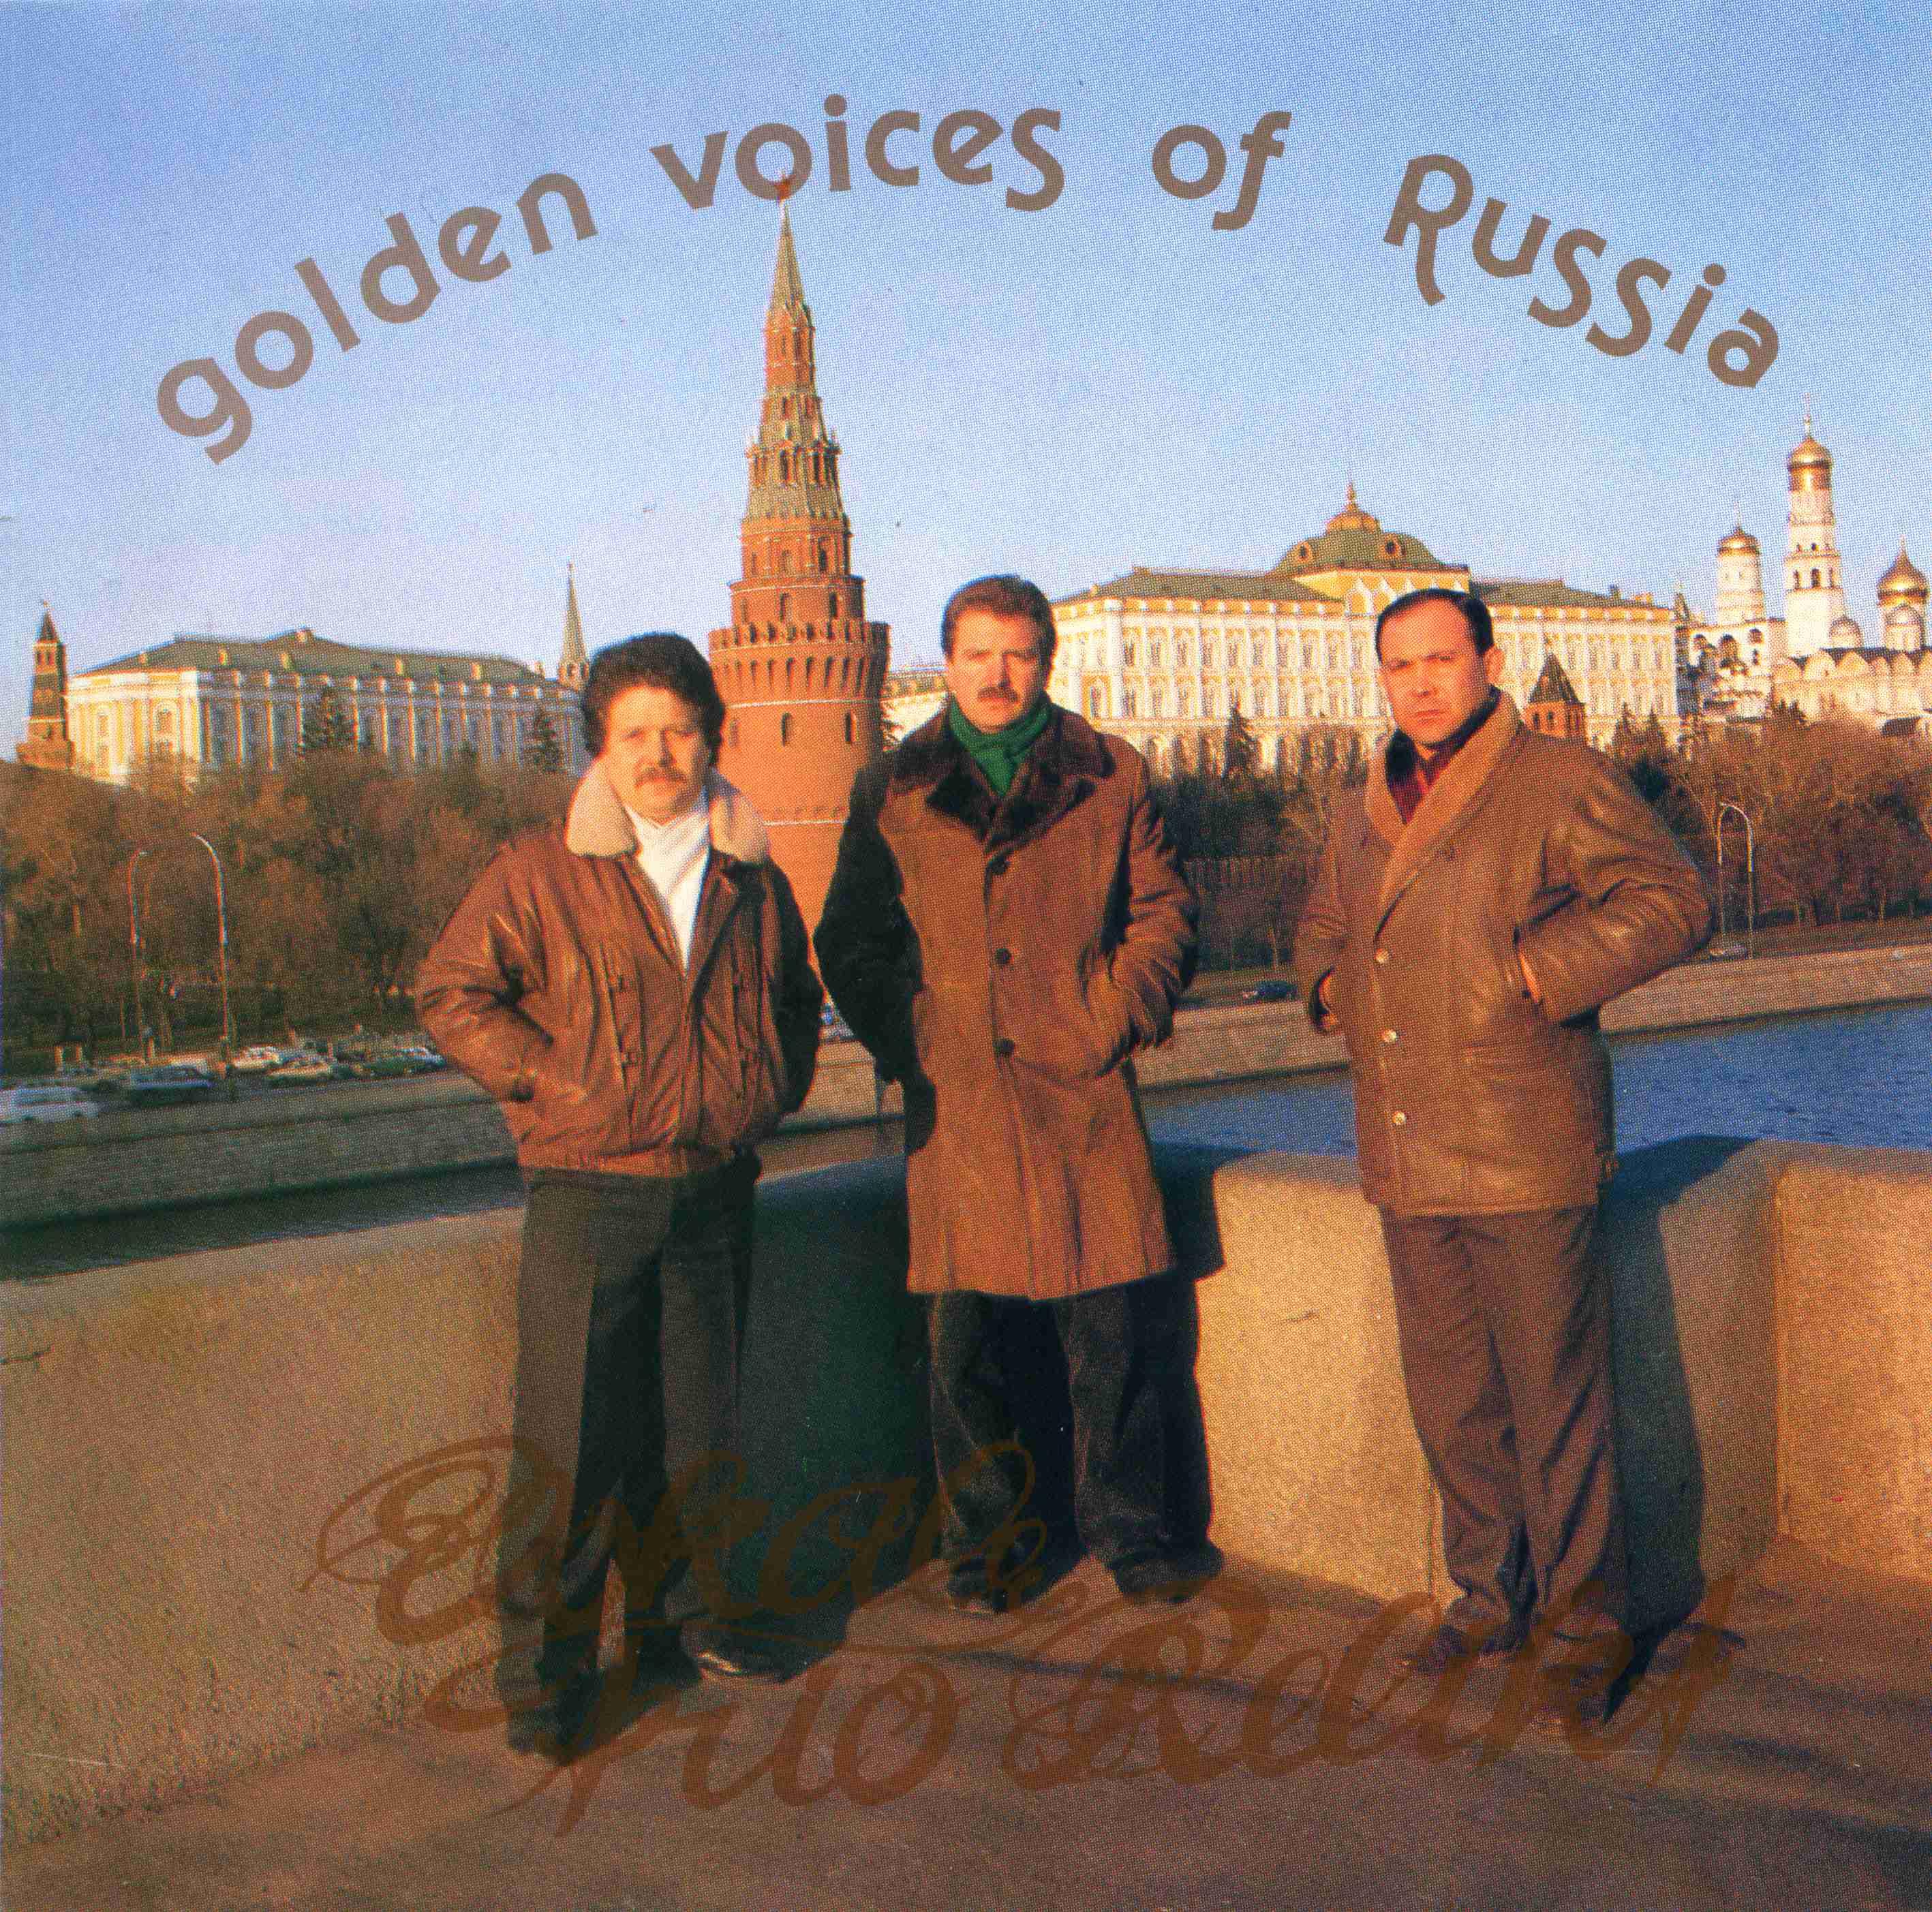 Golden voices of Russia001